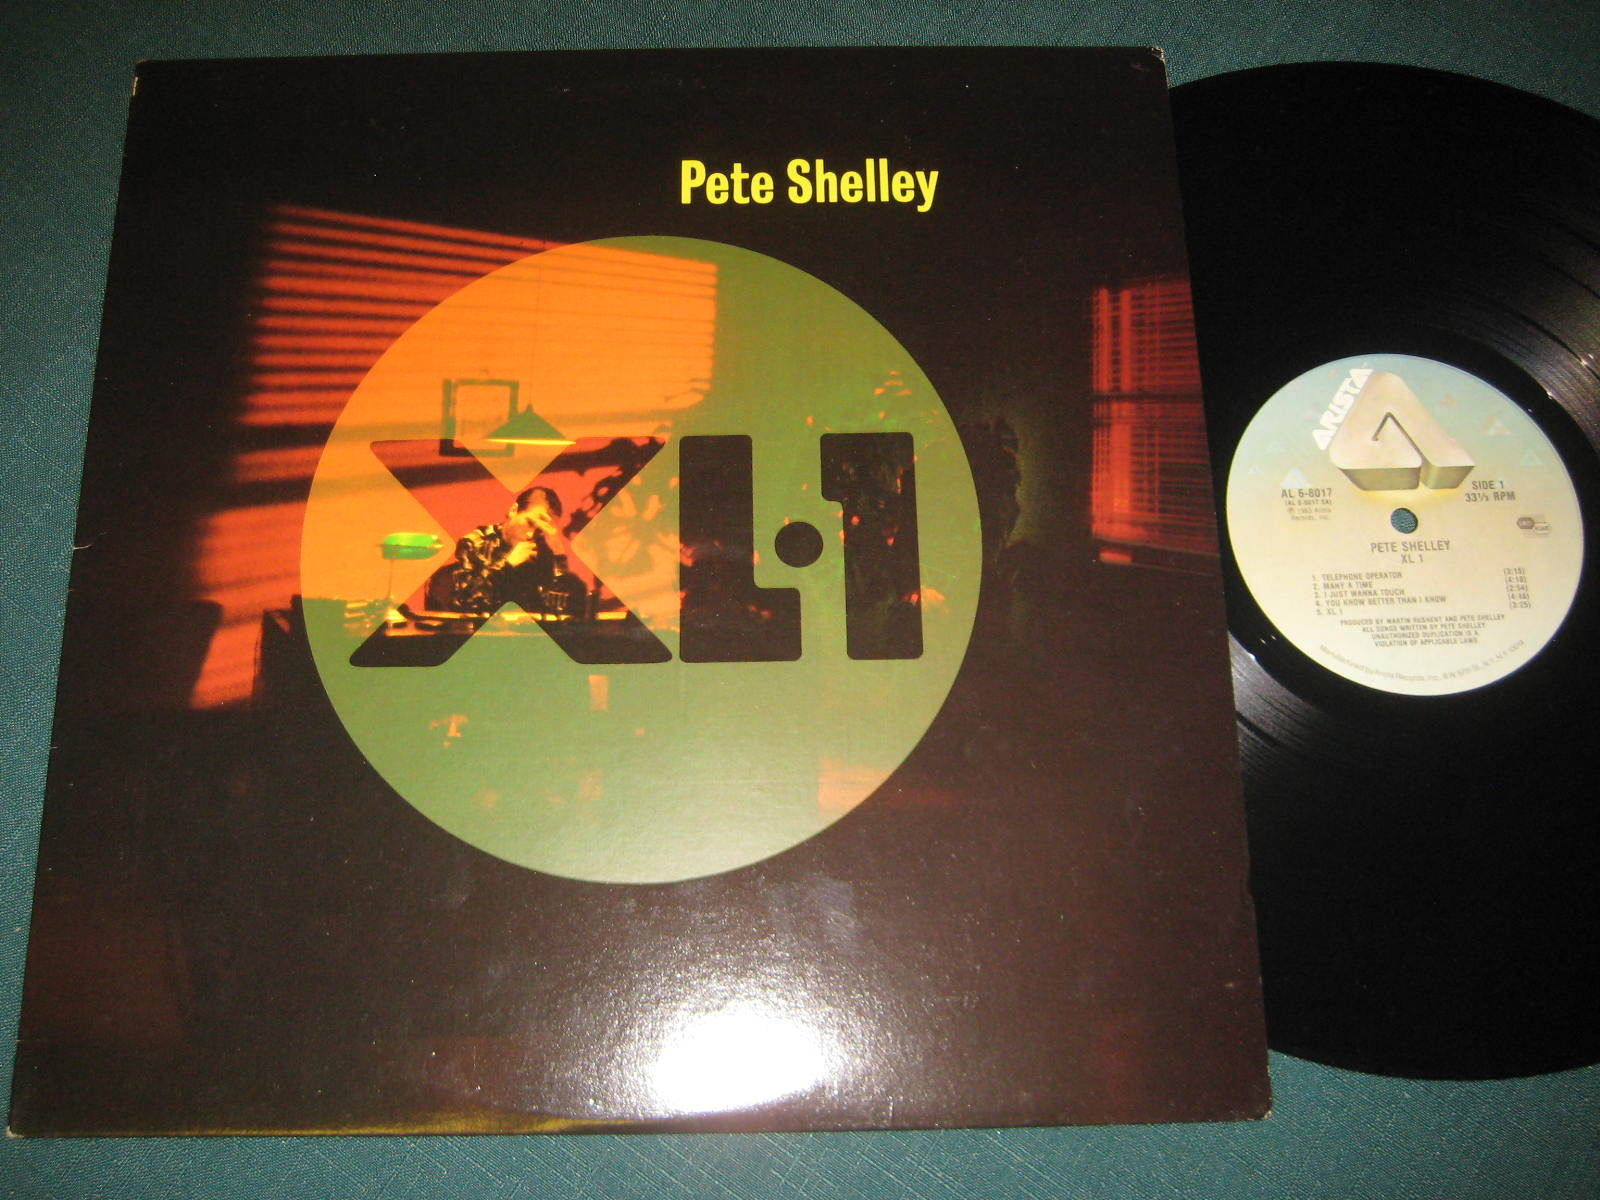 Pete Shelley - 'XL-1'